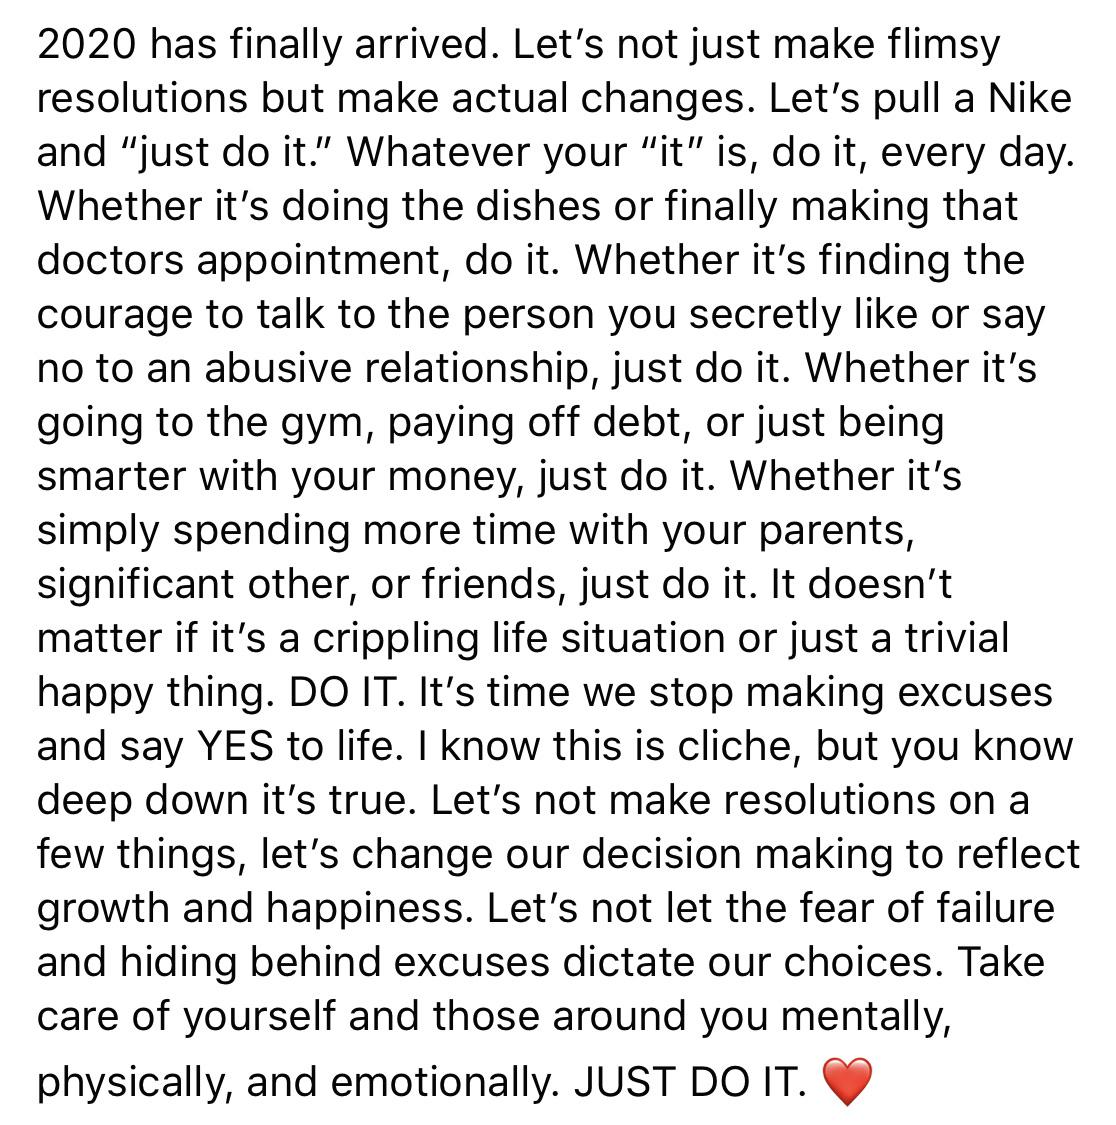 [Image] Let 2020 be the beginning of just doing it.